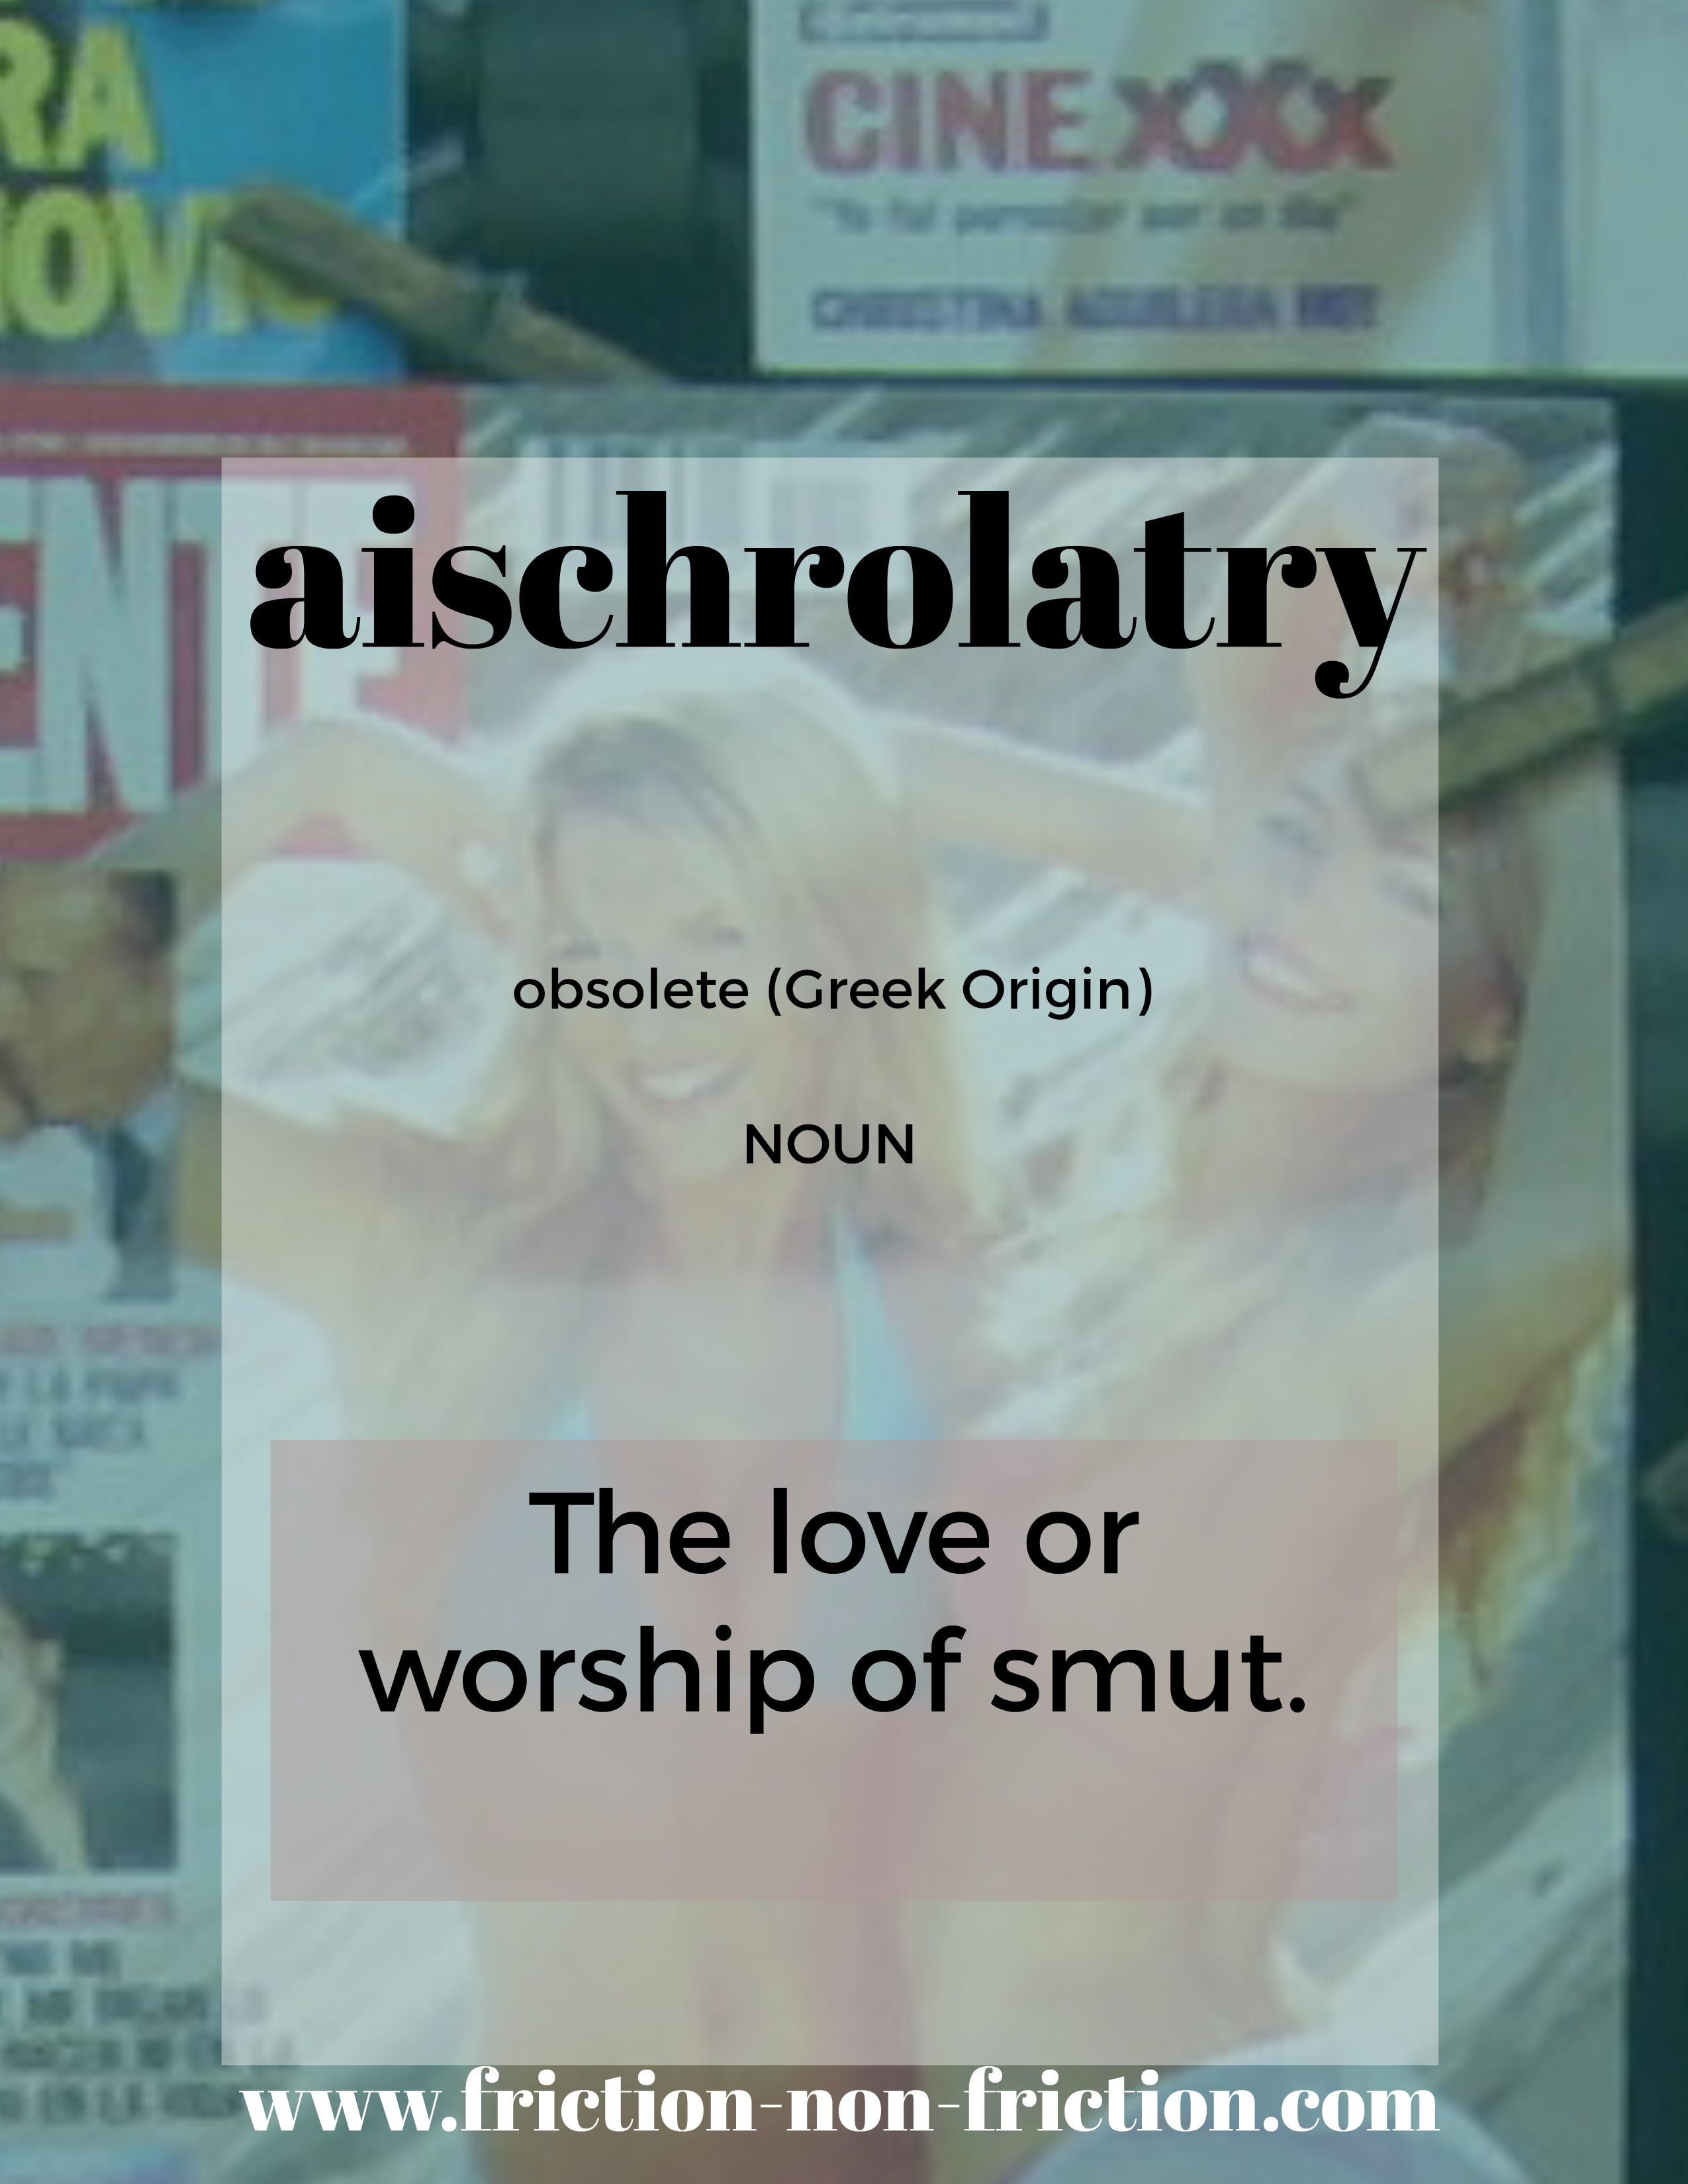 Aischrolatry -- another great FRICTIONARY definition from Friction|non|Friction